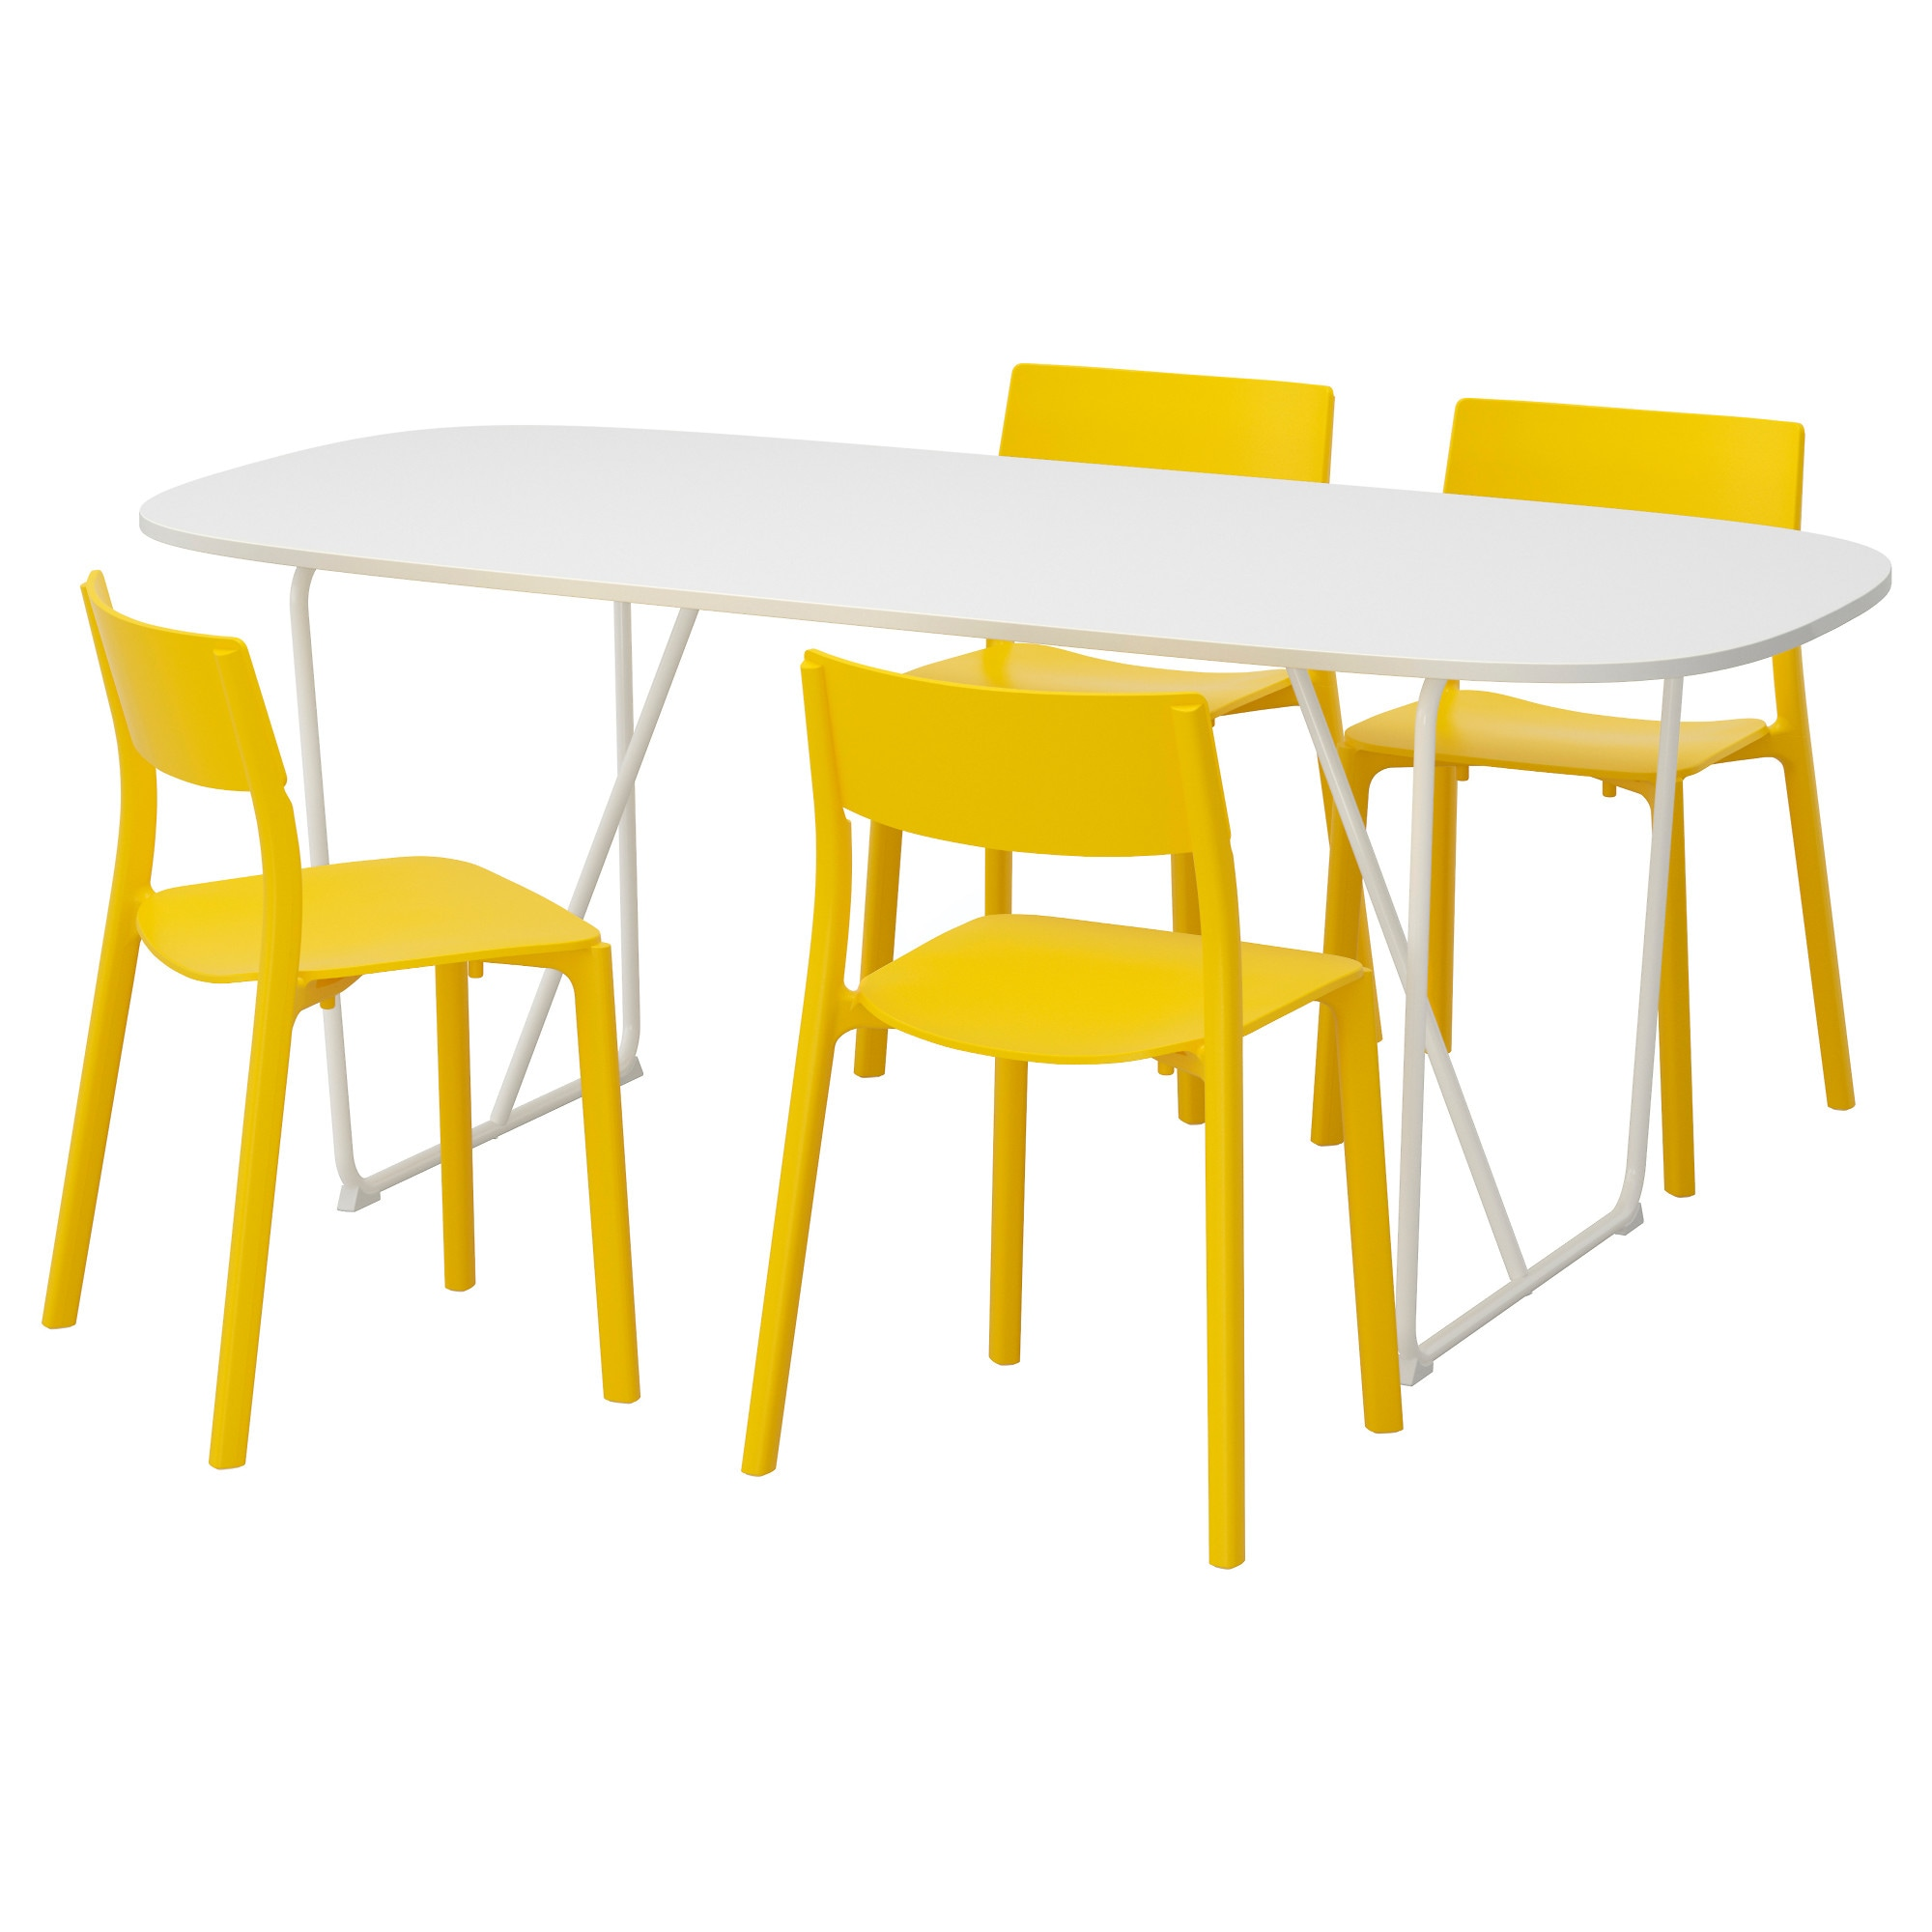 OPPEBY BACKARYD JANINGE Table and 4 chairs IKEA